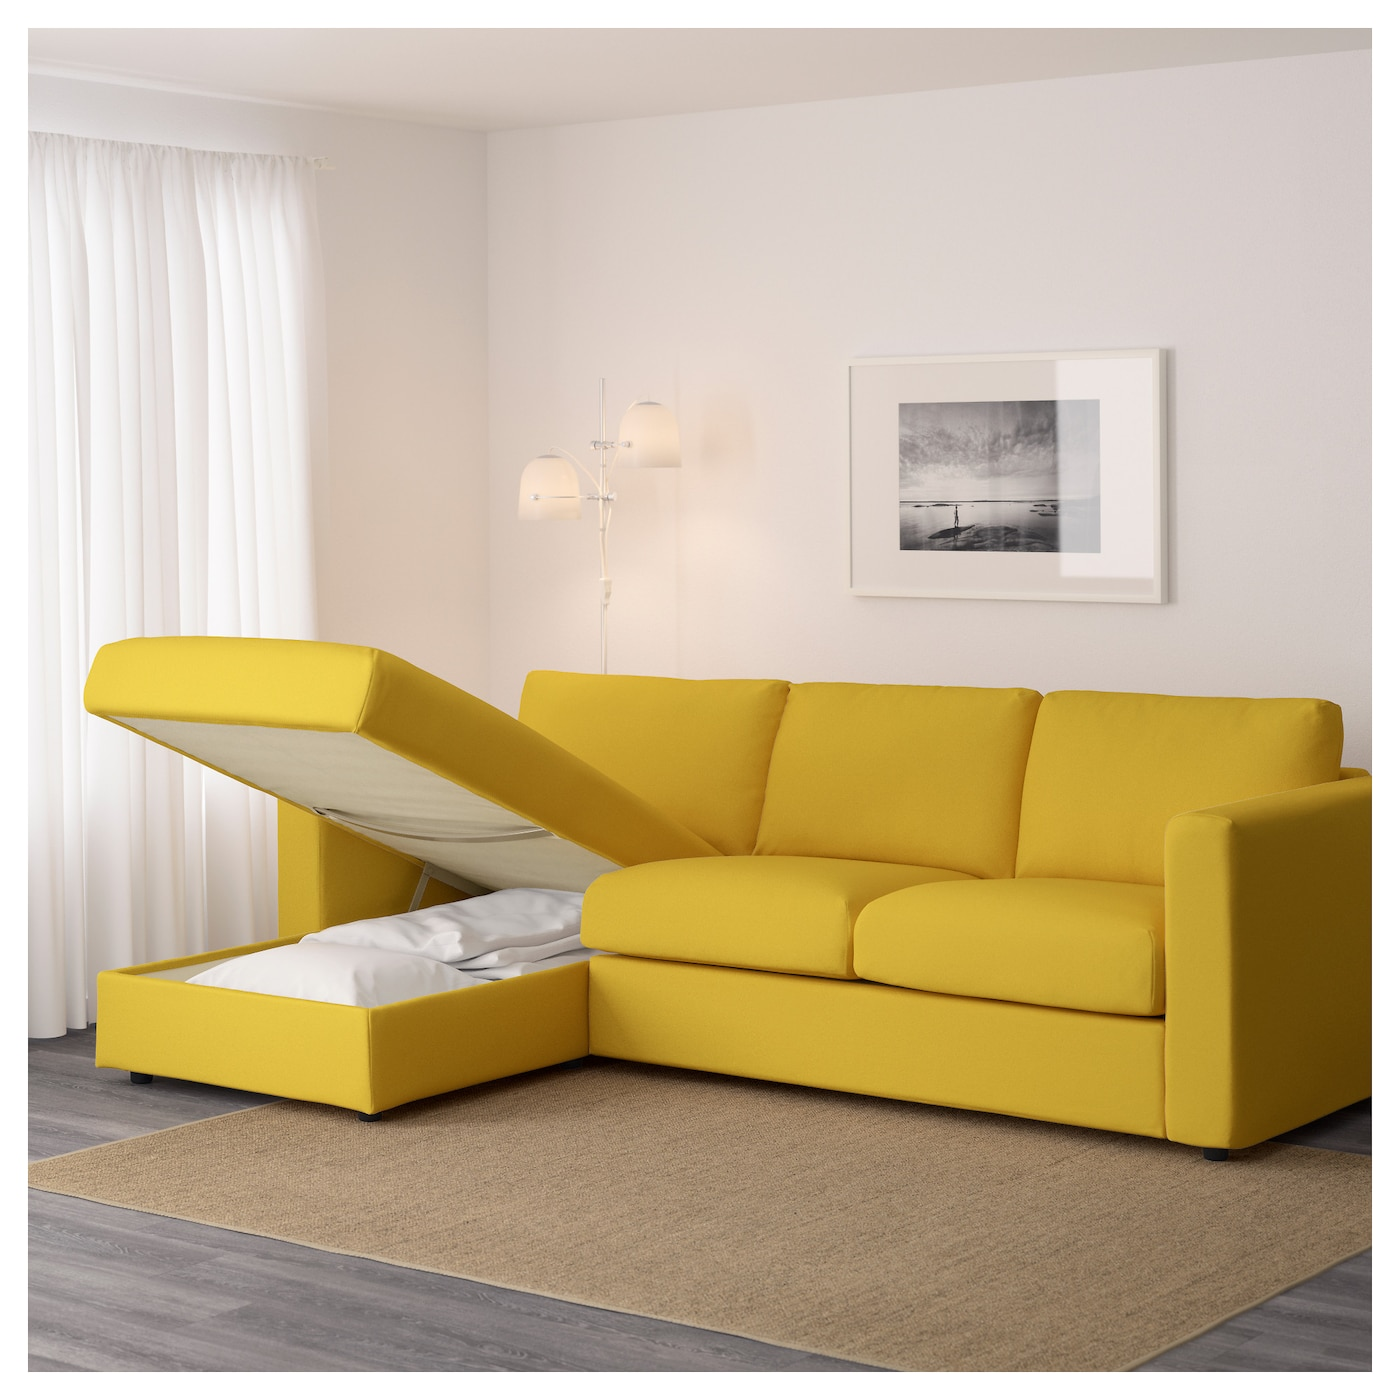 VIMLE 3 seat sofa With chaise longuegr228sbo golden yellow  : vimle 3 seat sofa with chaise longue grC3A4sbo golden yellow0520620pe642345s5 from www.ikea.com size 2000 x 2000 jpeg 590kB